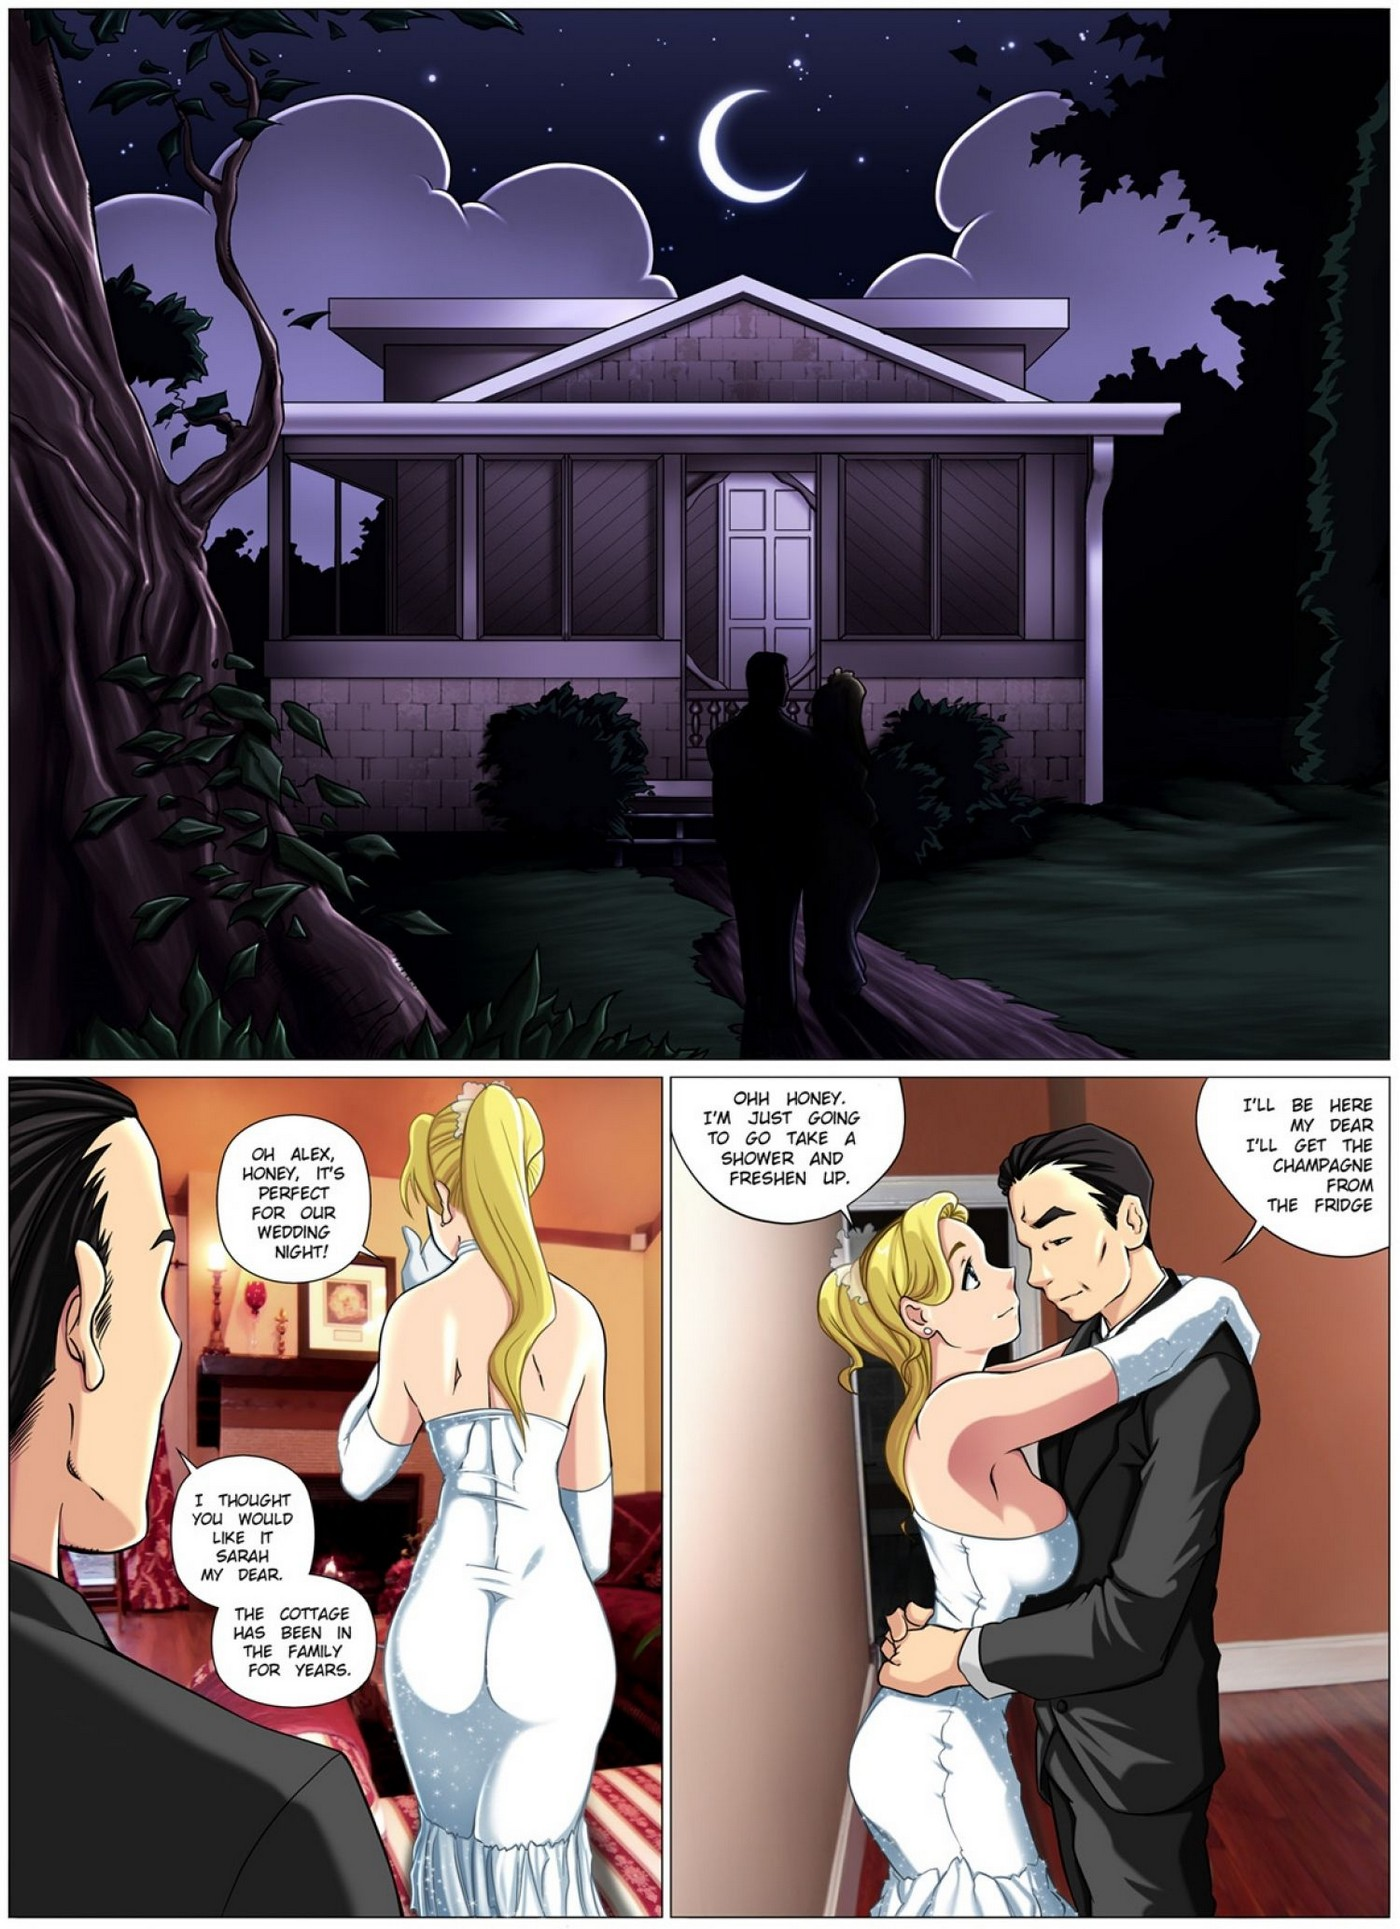 Monster Wedding Night Romulo Melkor Mancin 02